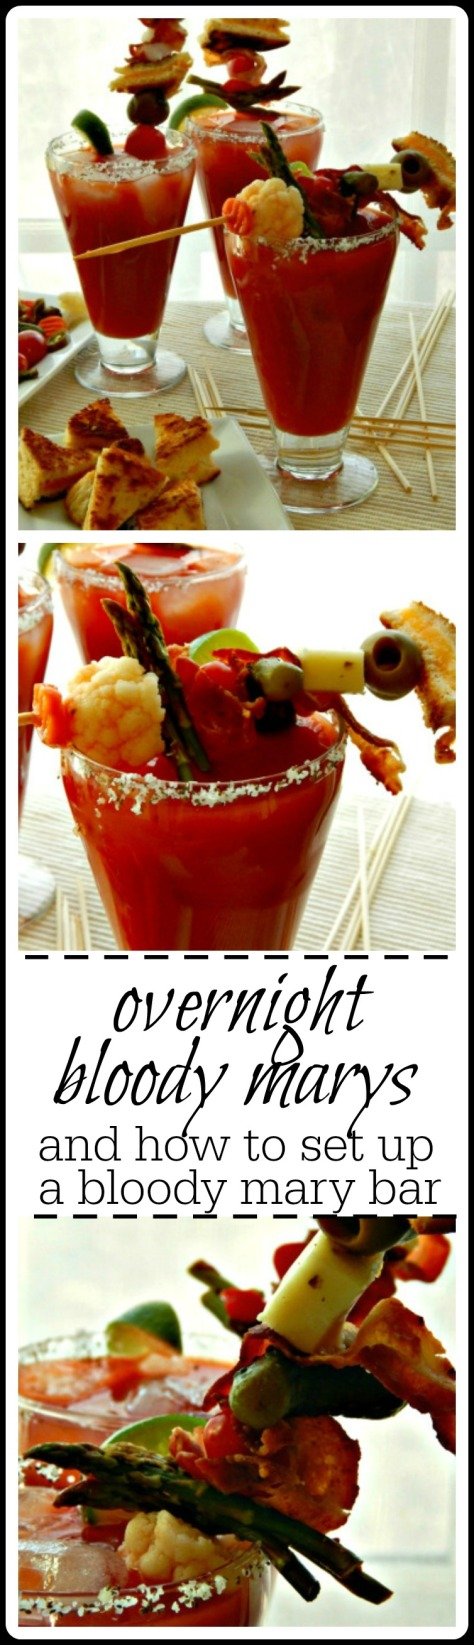 Great recipe and everything you need to set up a Bloody Mary party your guests will talk about for years!